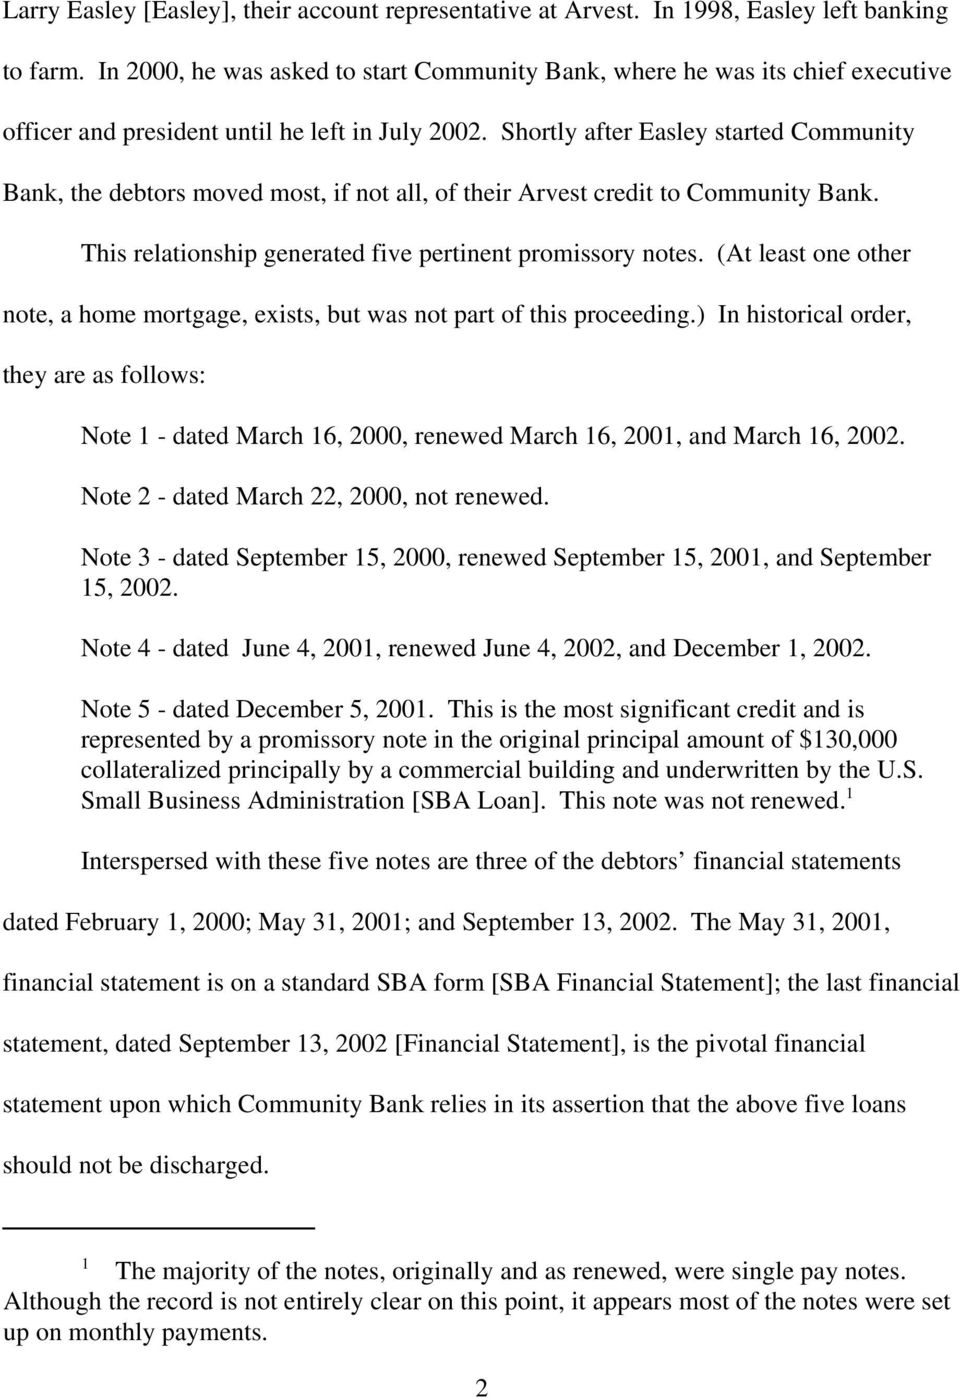 Shortly after Easley started Community Bank, the debtors moved most, if not all, of their Arvest credit to Community Bank. This relationship generated five pertinent promissory notes.